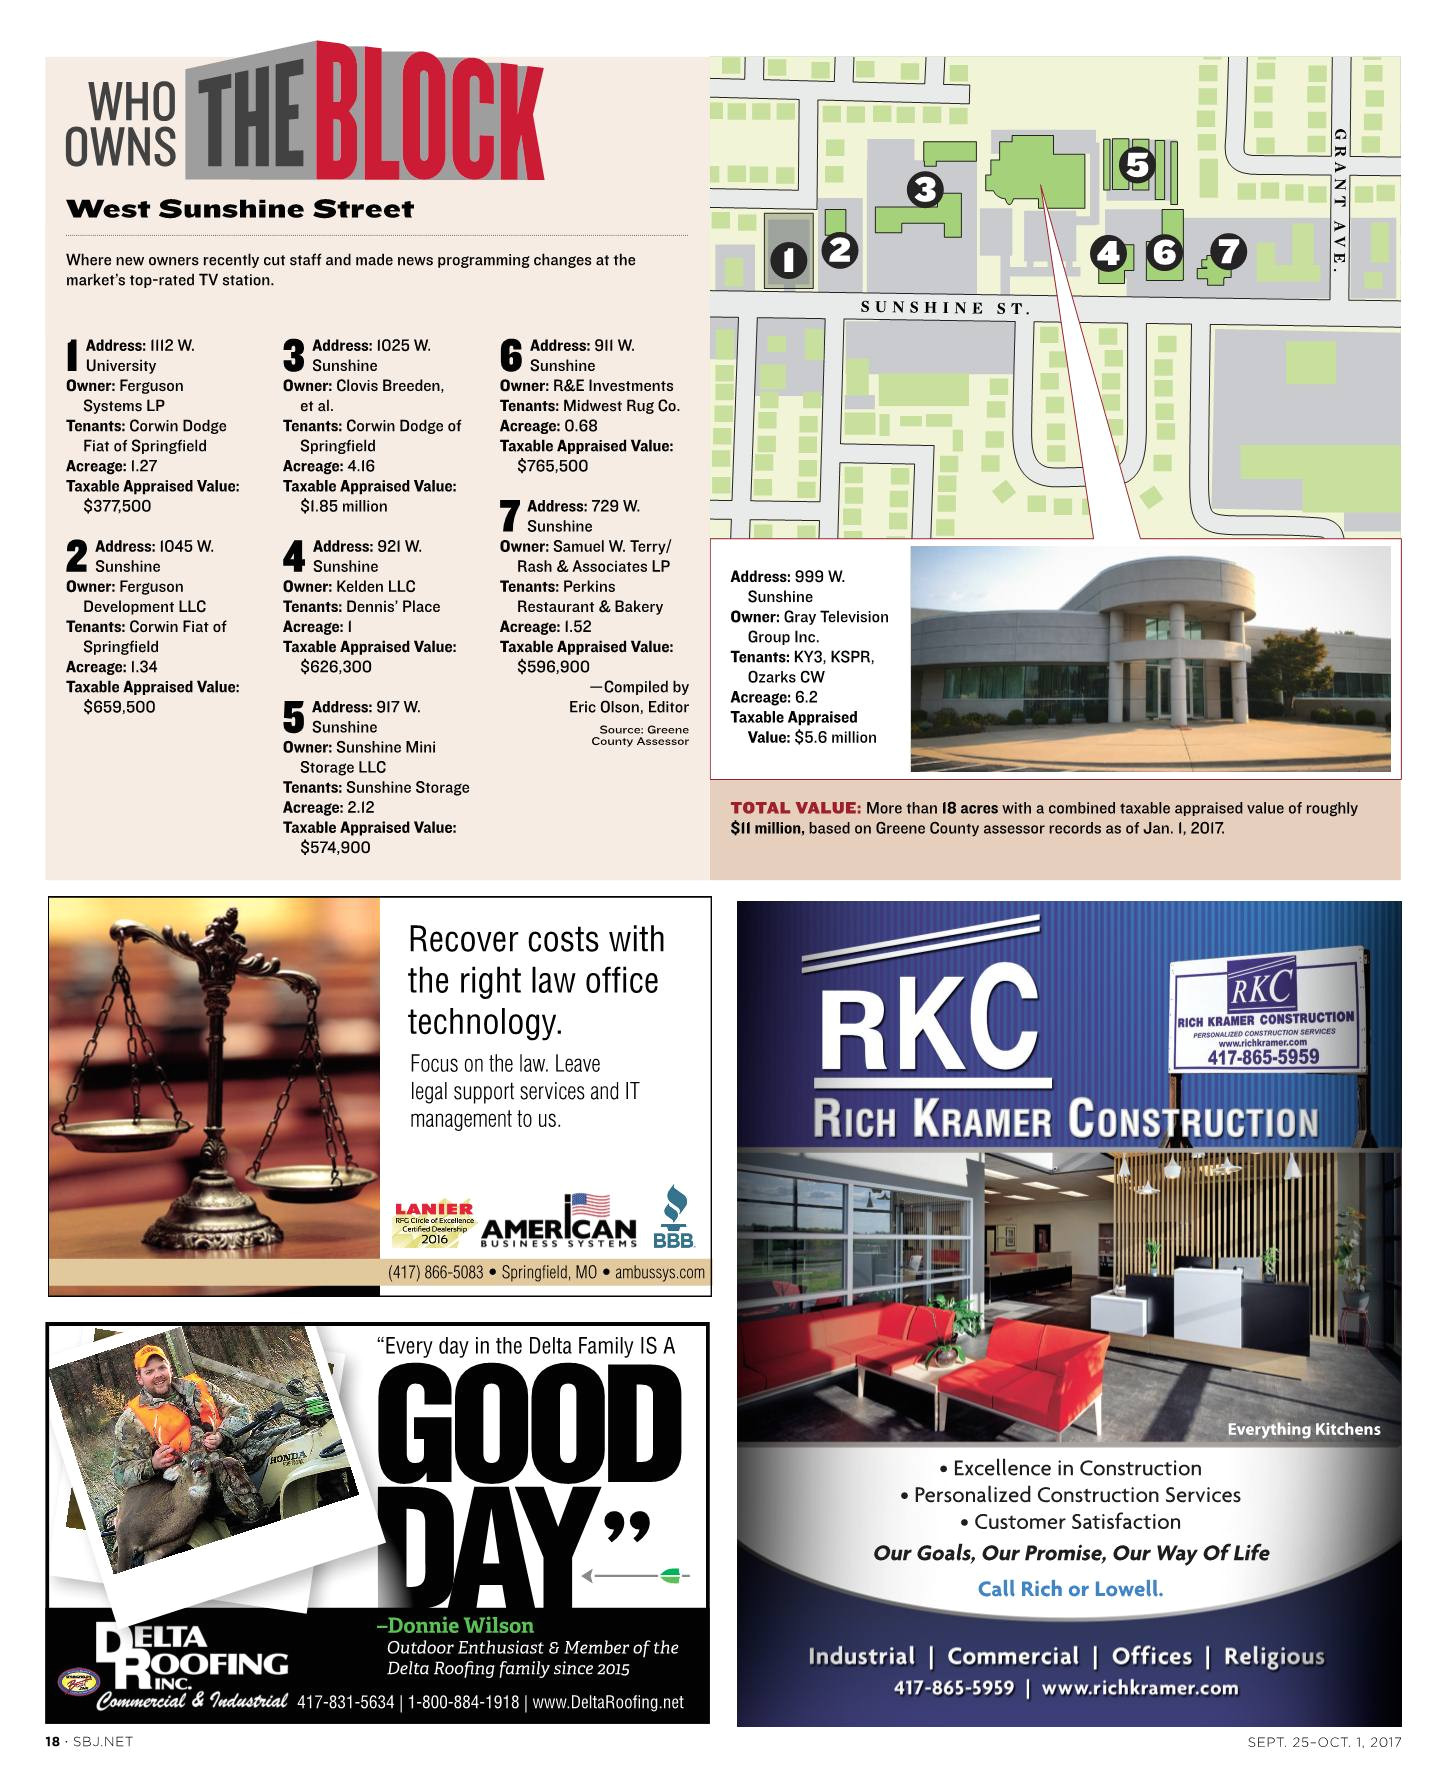 Midwest Rug In Springfield Mo Newzgroup Com Papers 17053 2017 09 25 Flippingbook Files assets